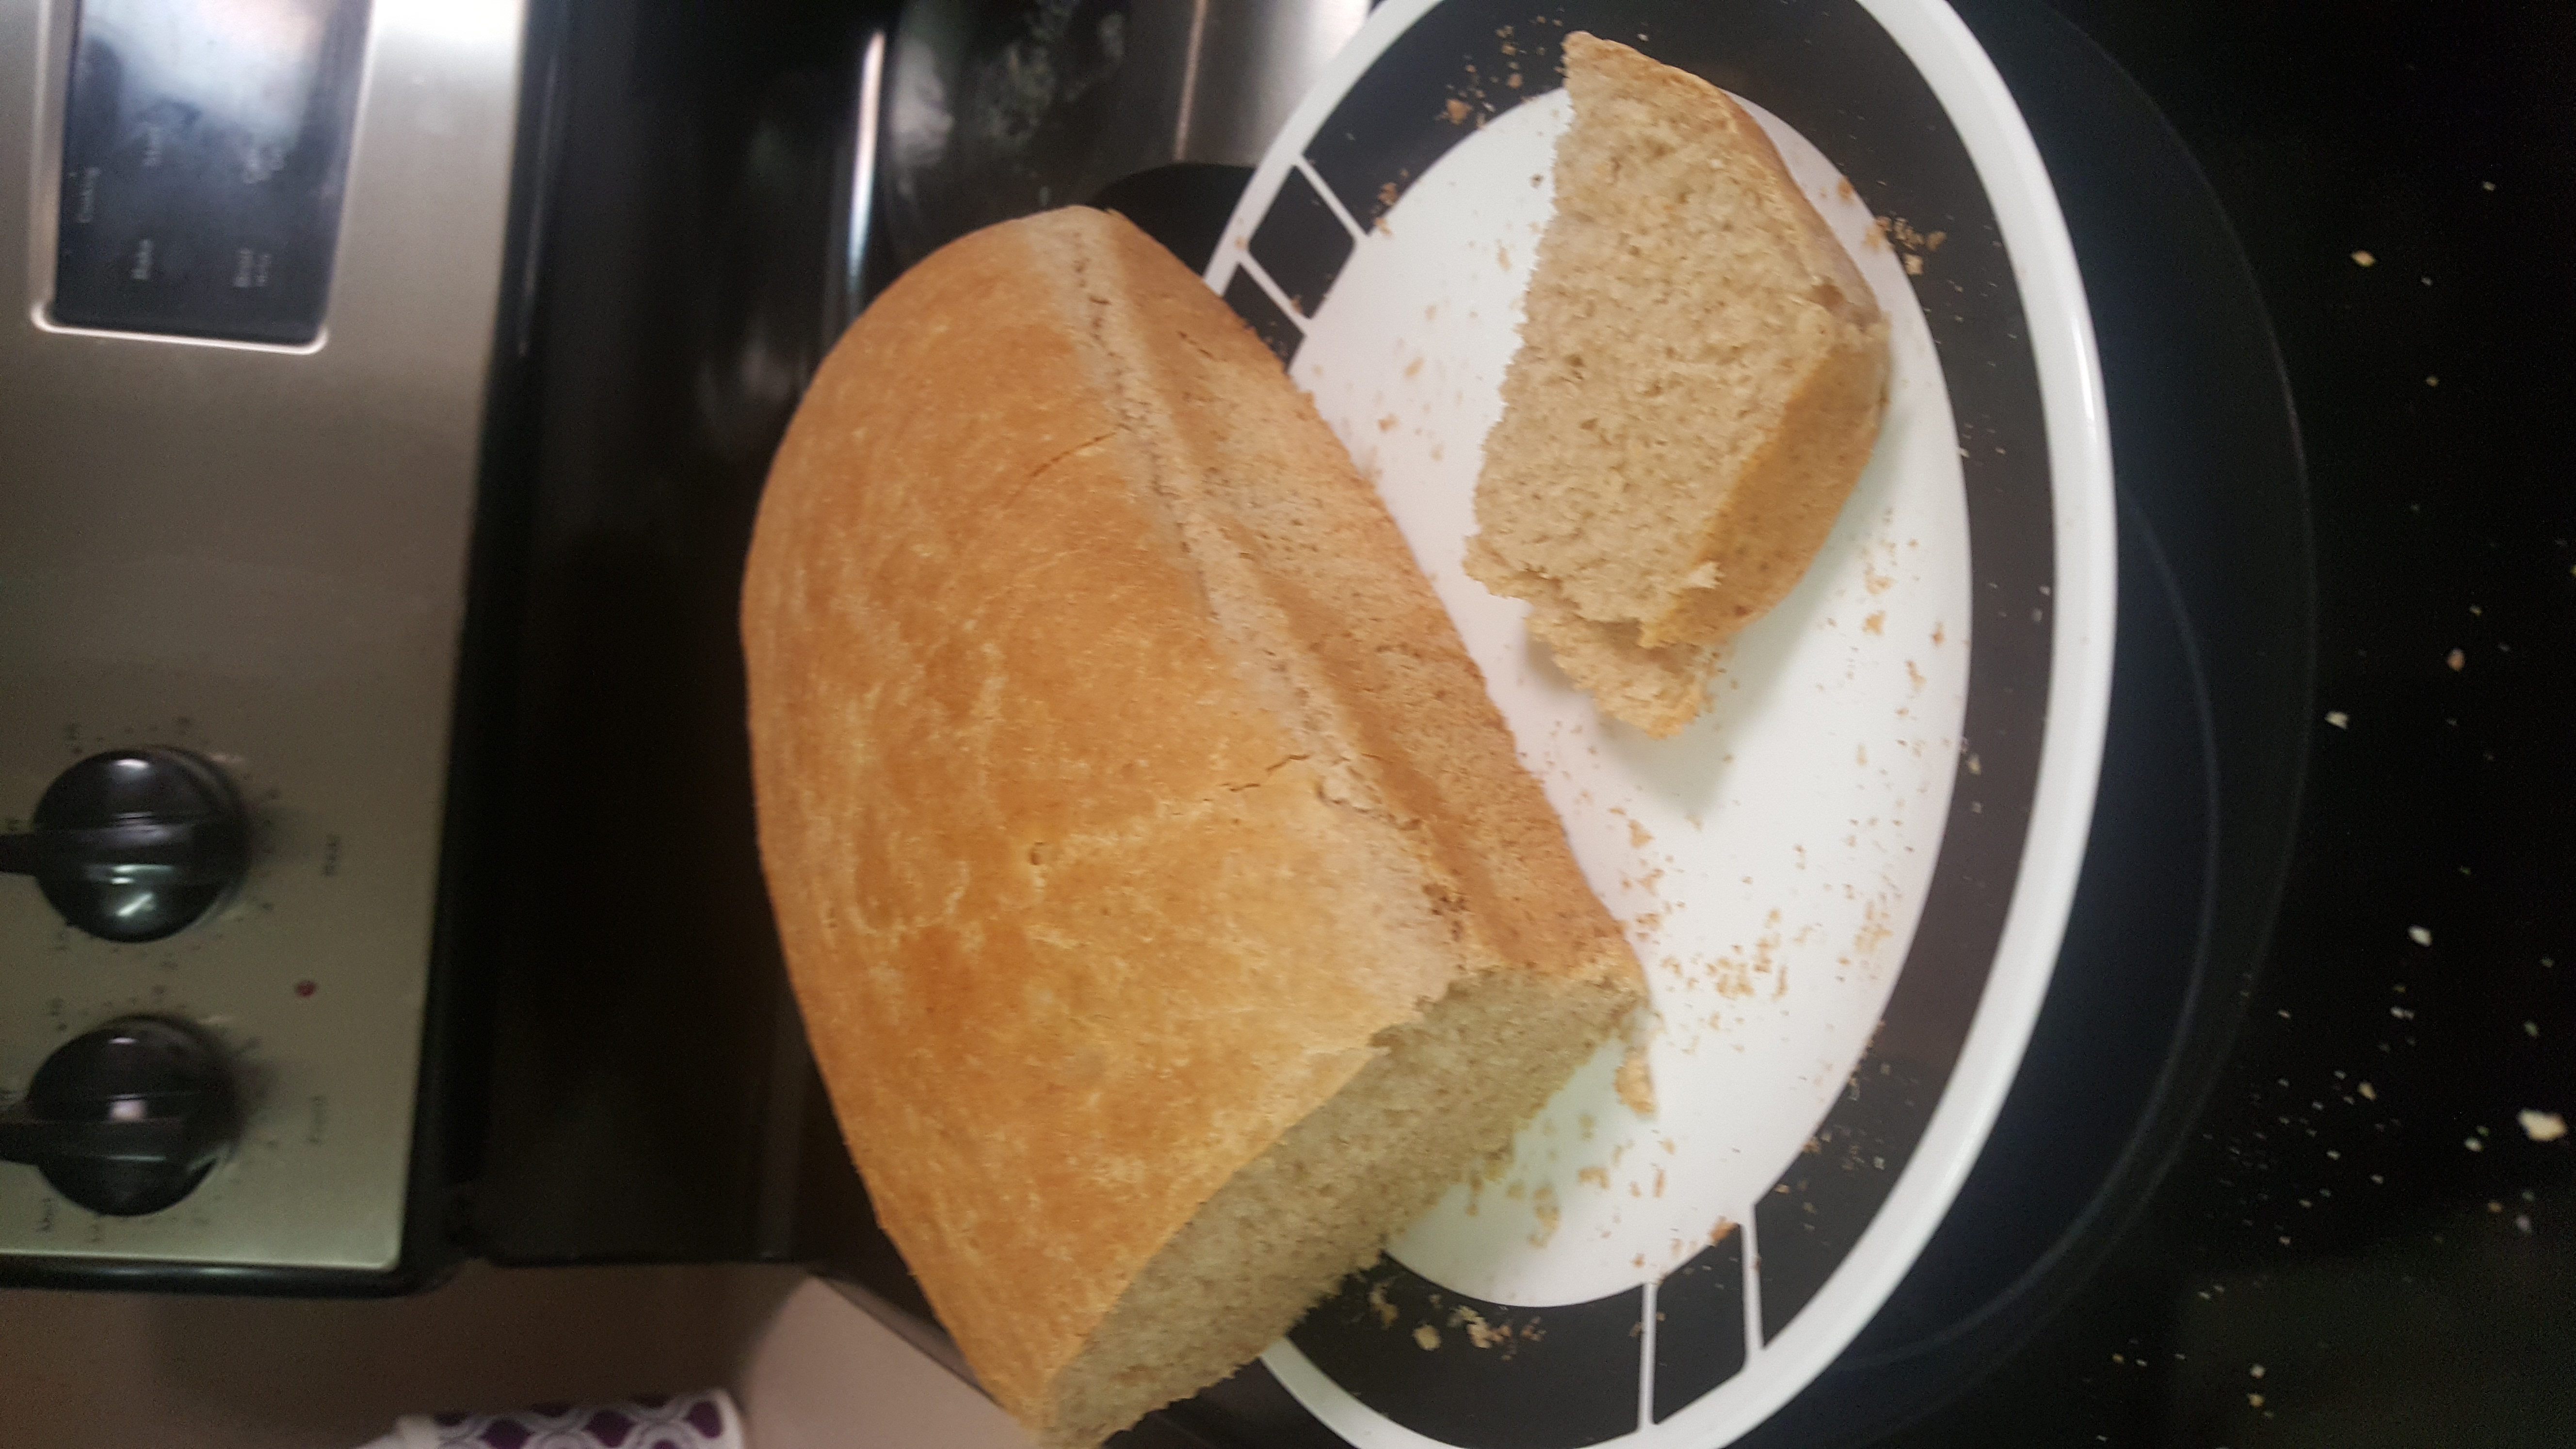 Sweet Wheat Bread Kimberly Gries